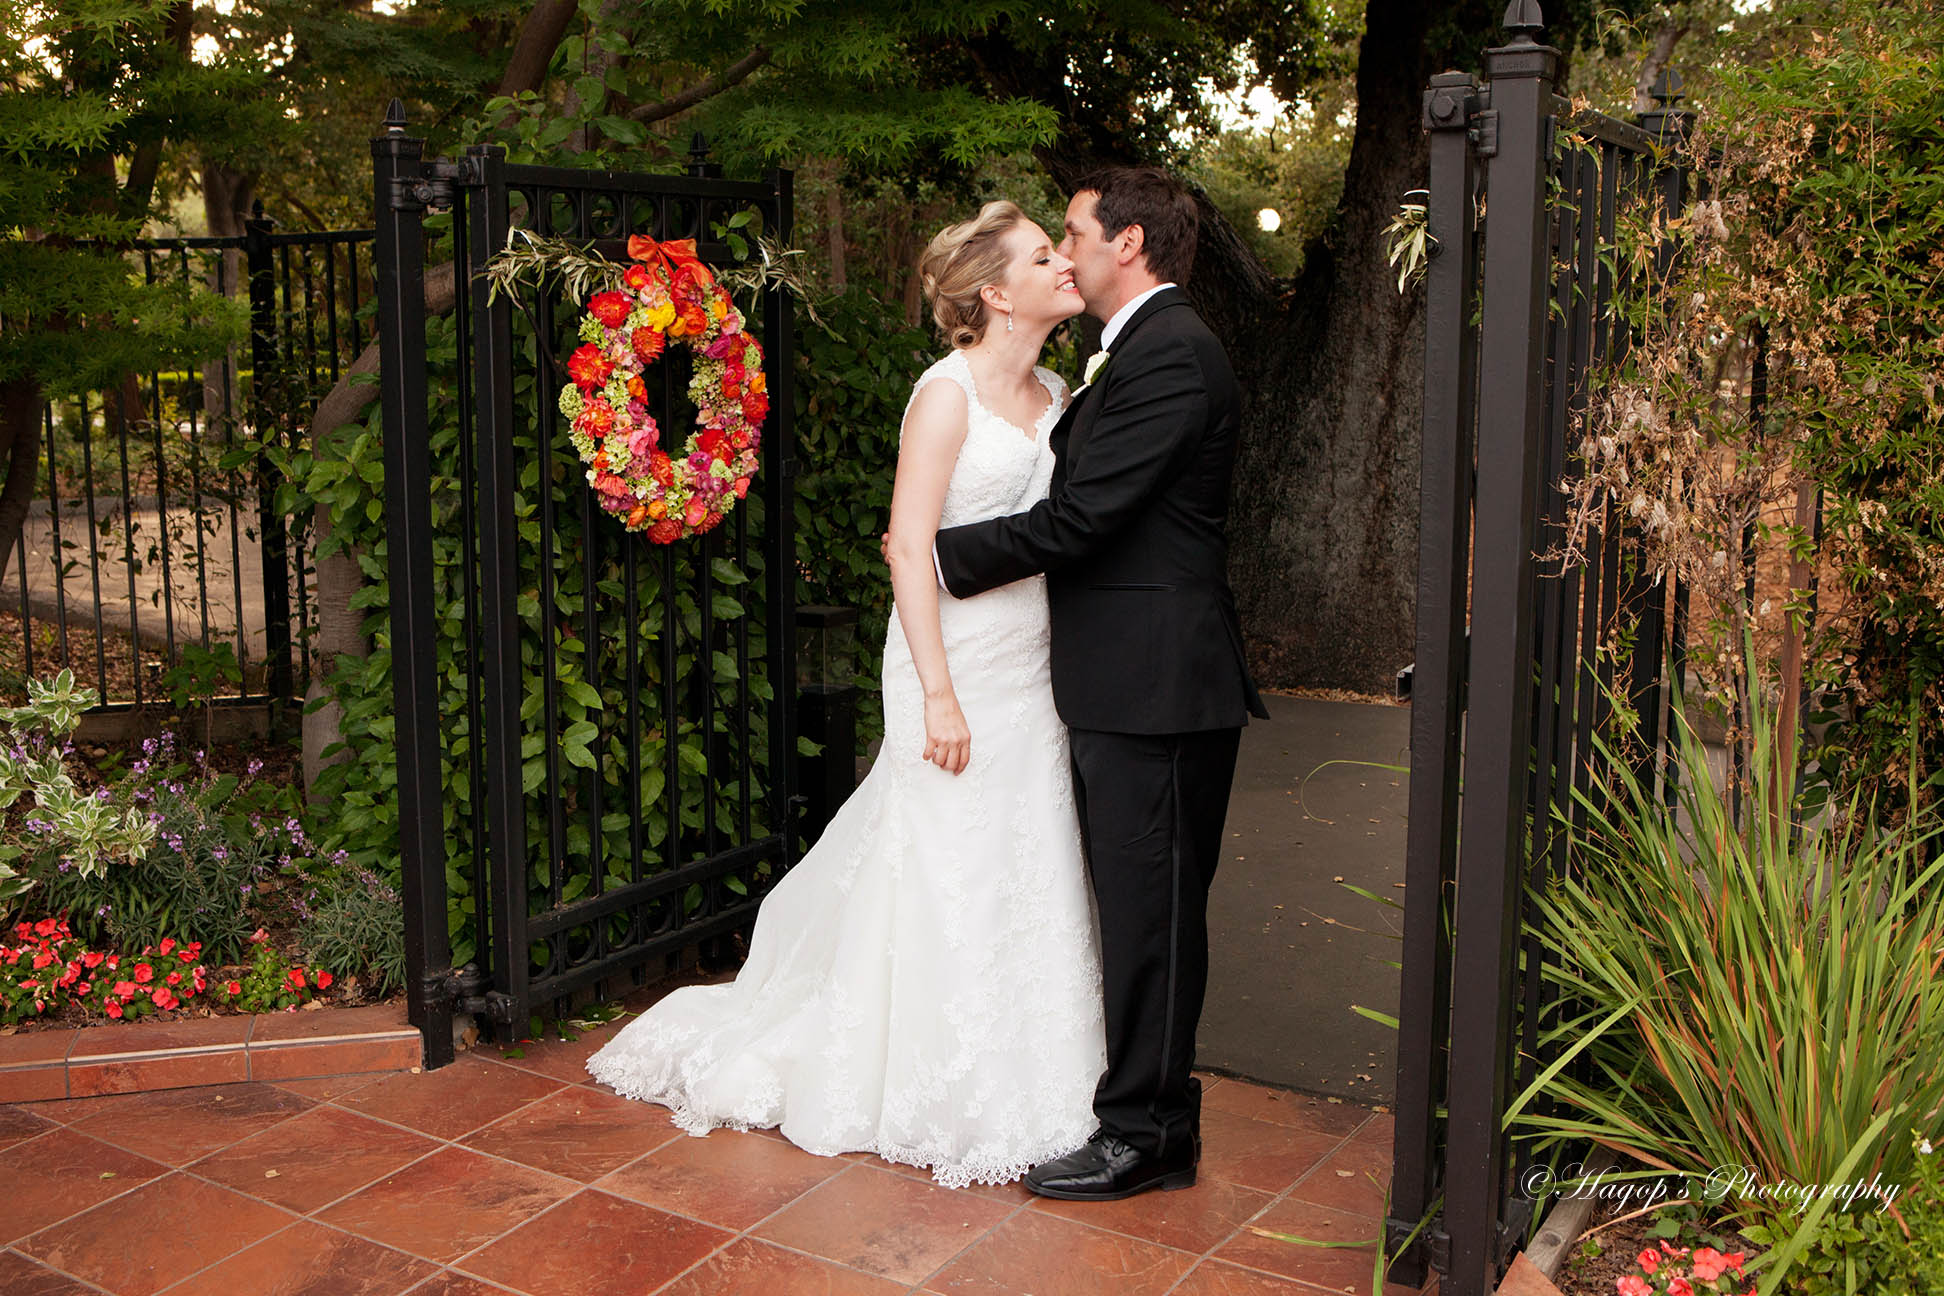 groom kissing the bride by the gate